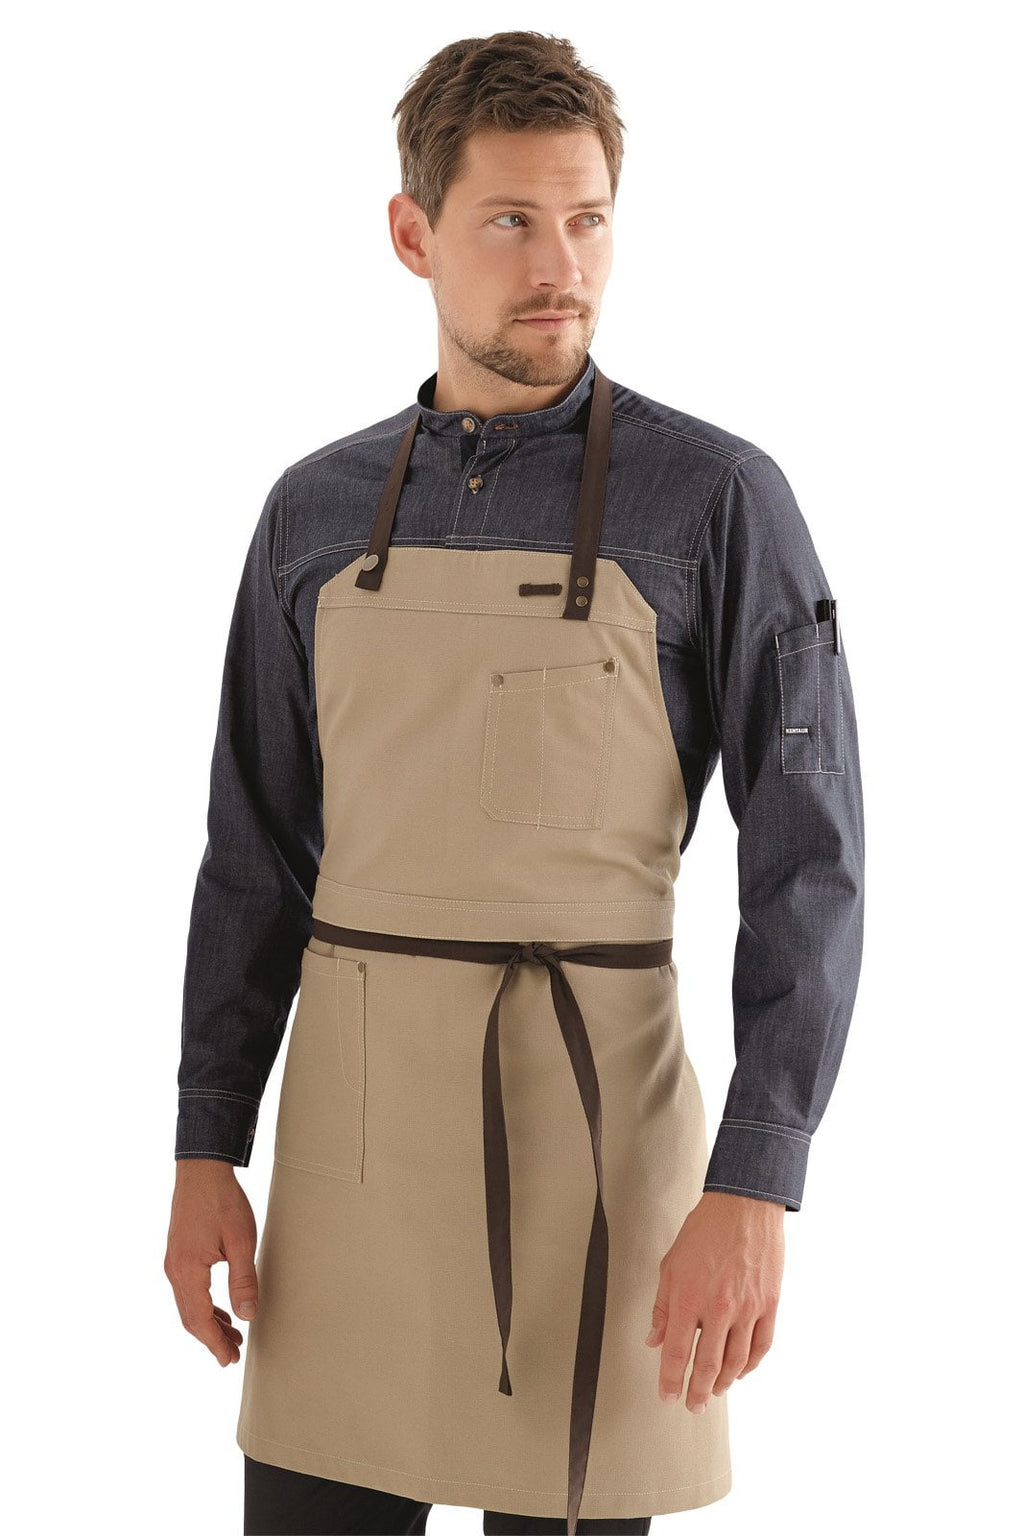 Kentaur 30360 Raw Bib Apron